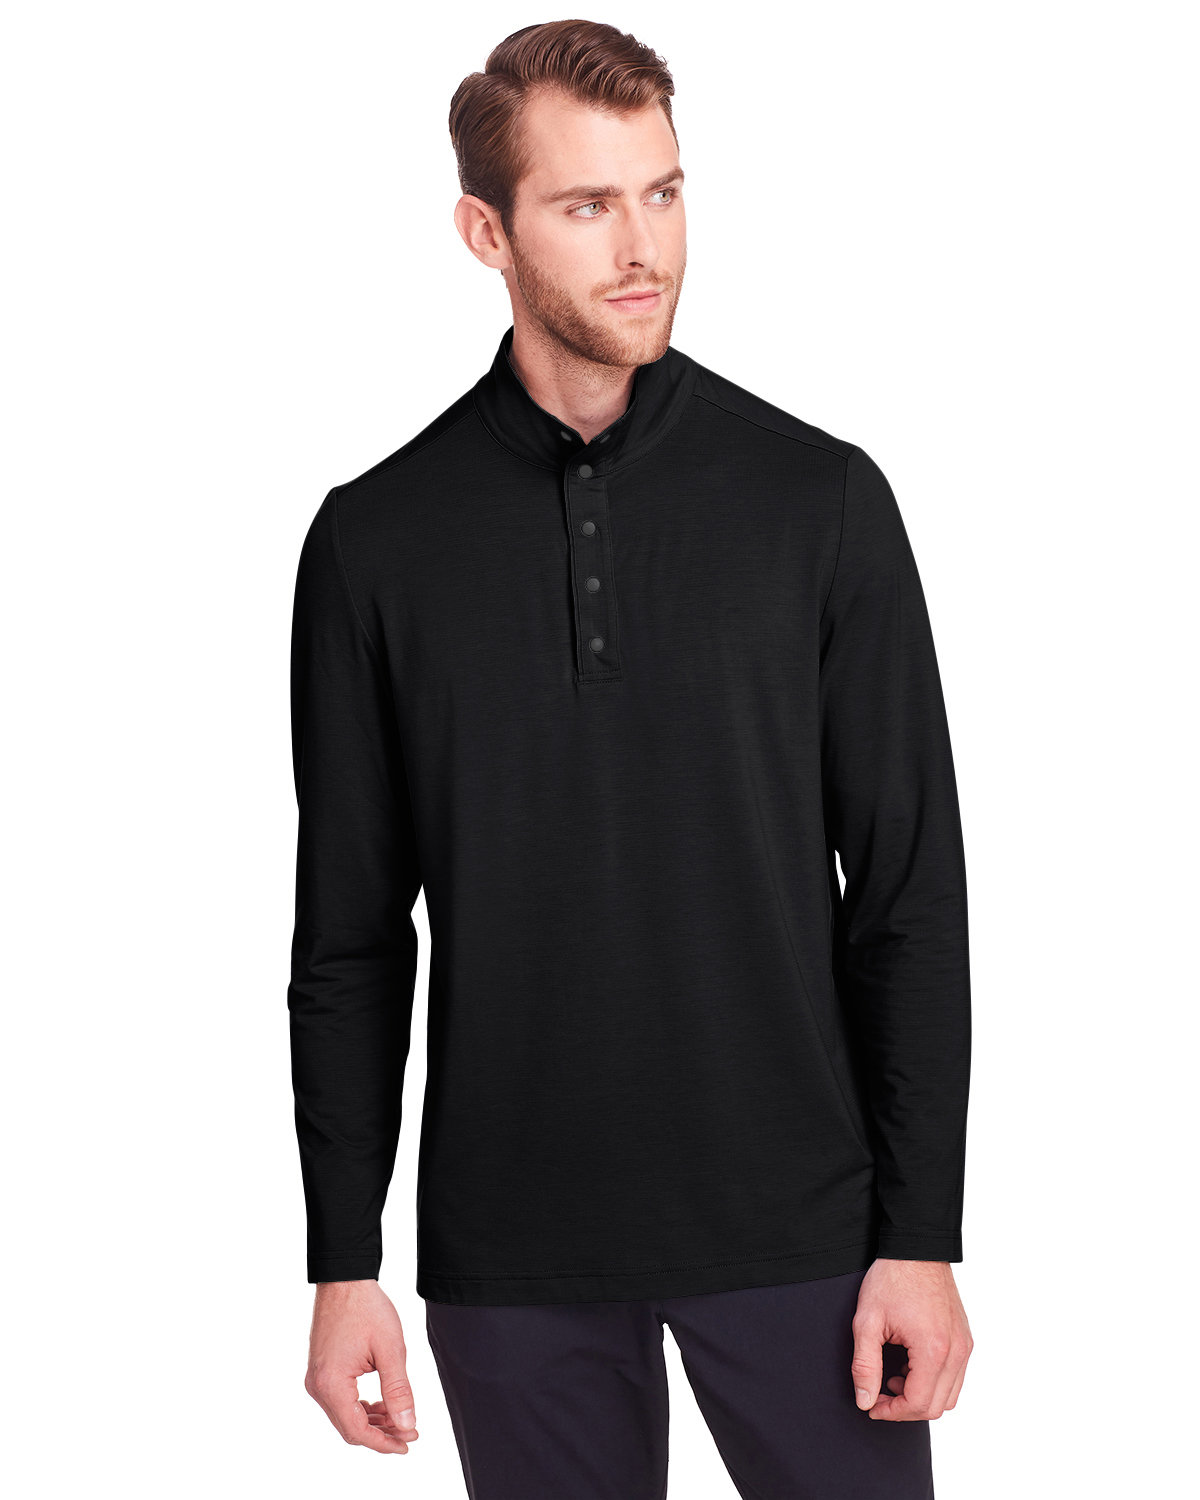 North End Men's Jaq Snap-Up Stretch Performance Pullover BLACK